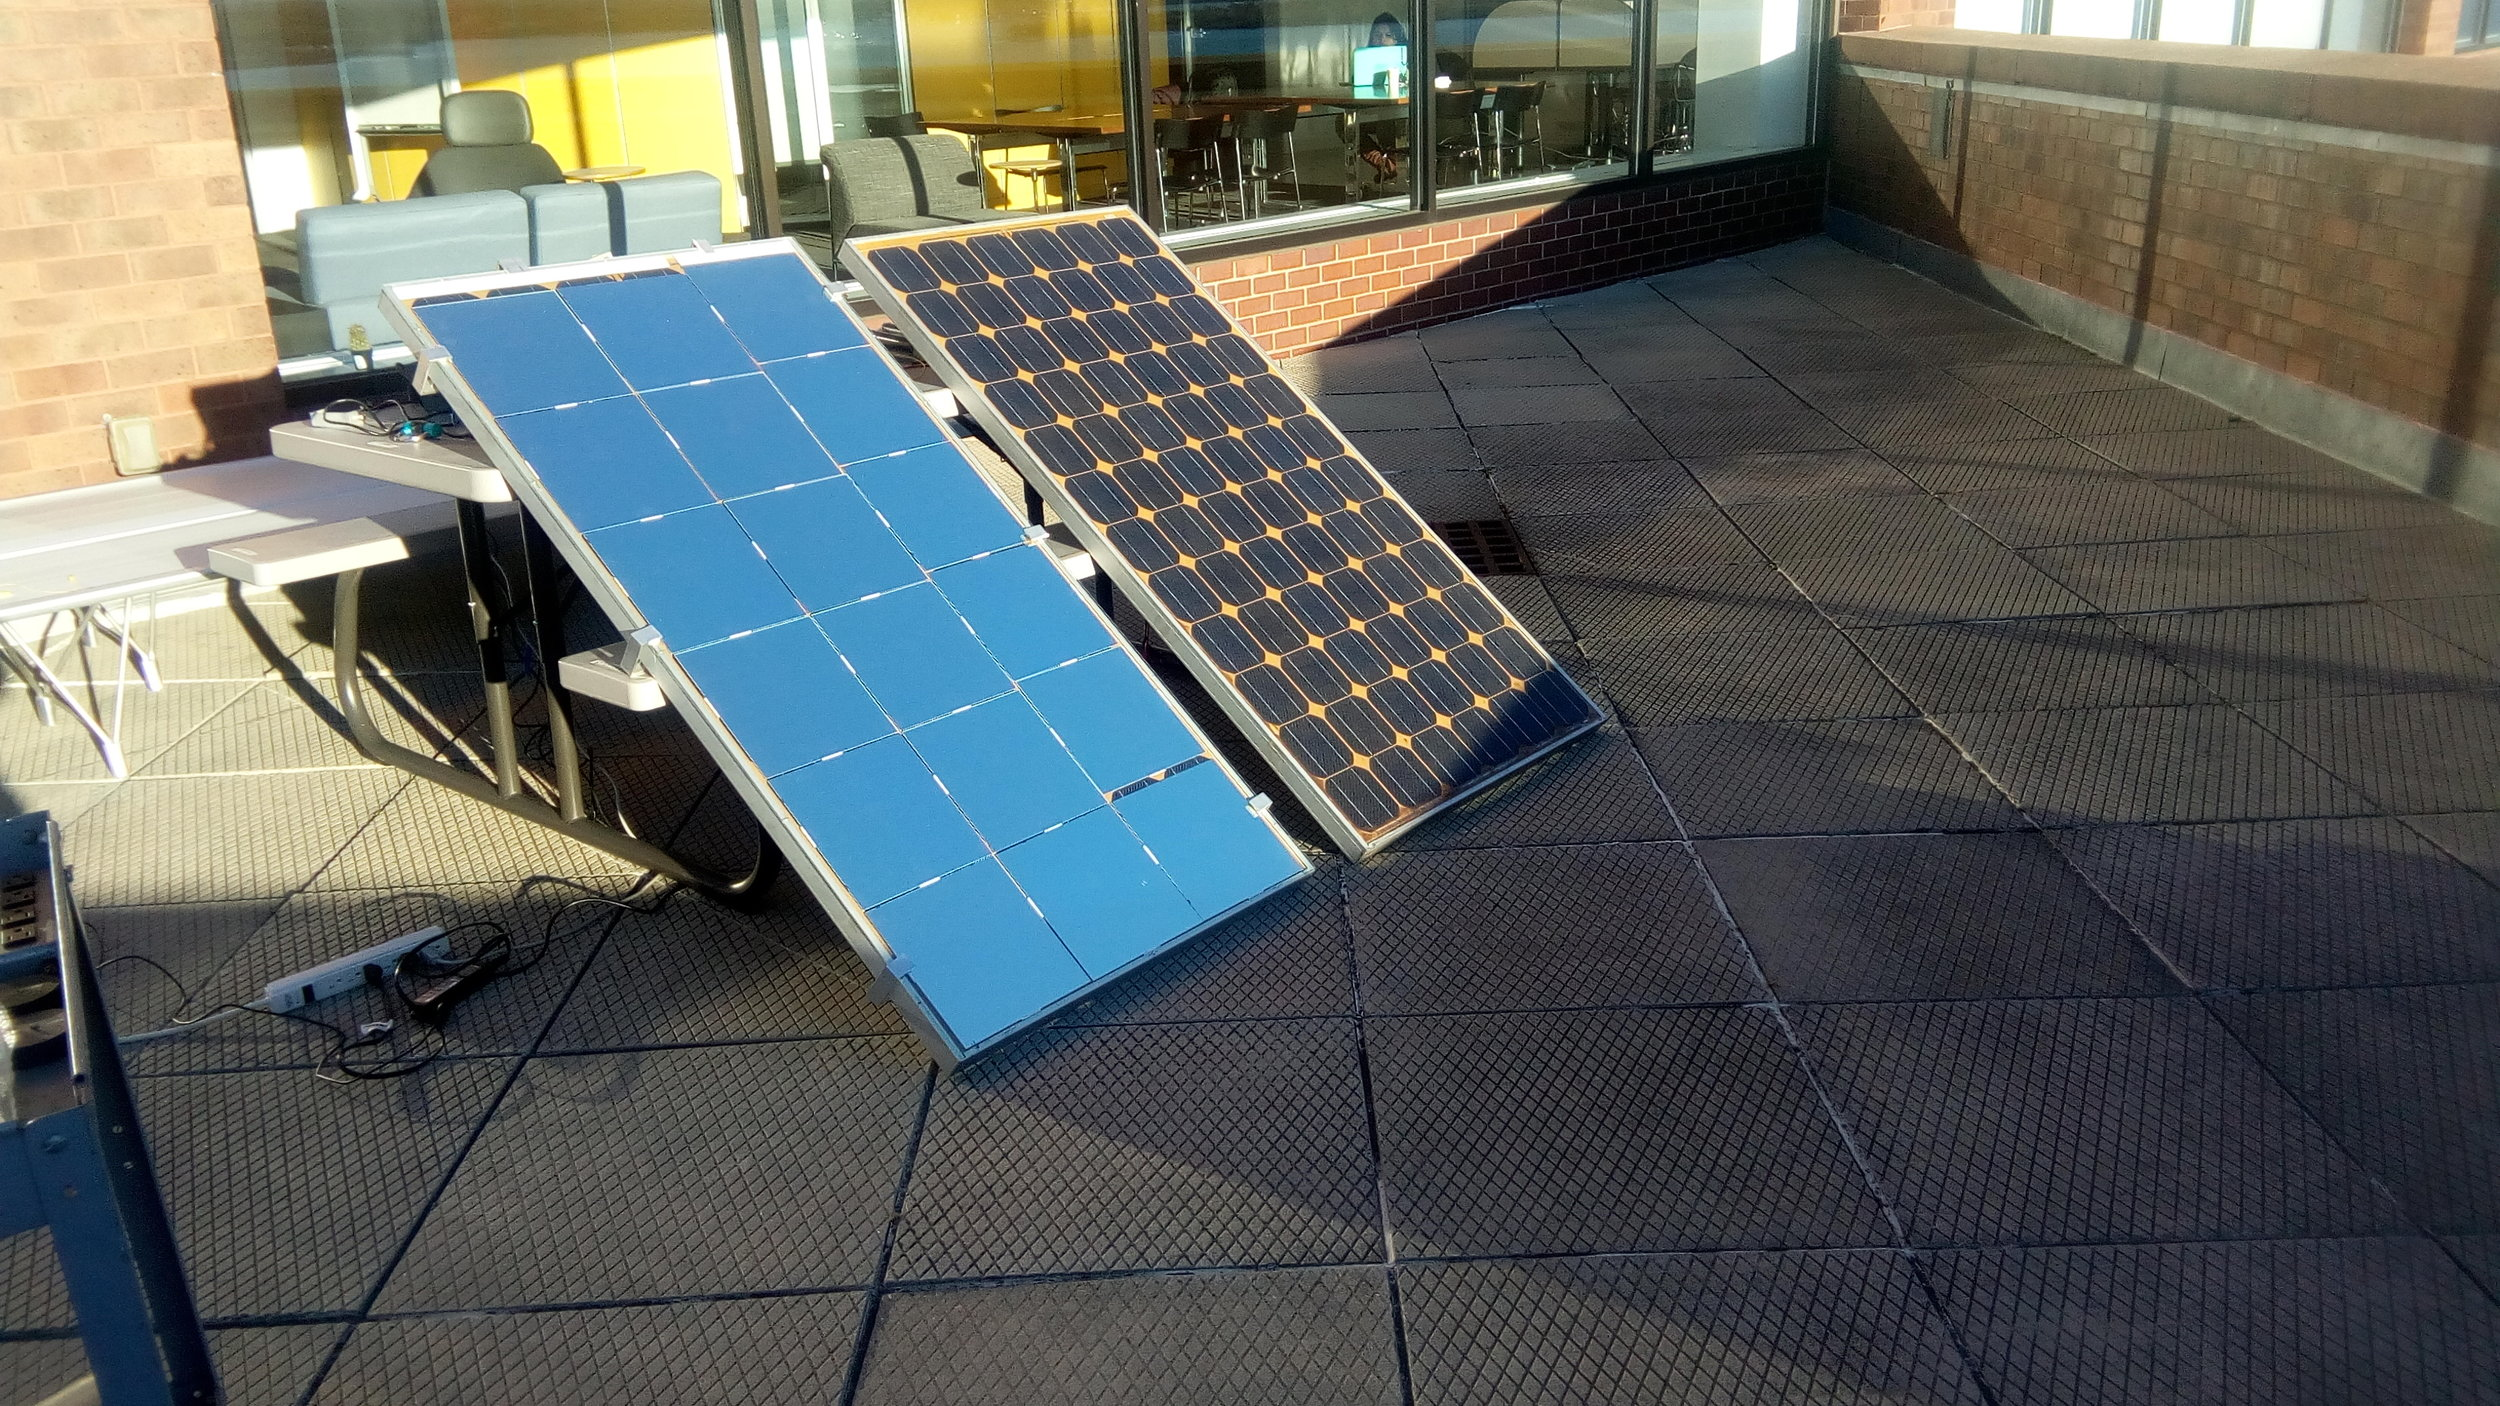 A solar panel using PSC™ technology vs. a standard solar panel